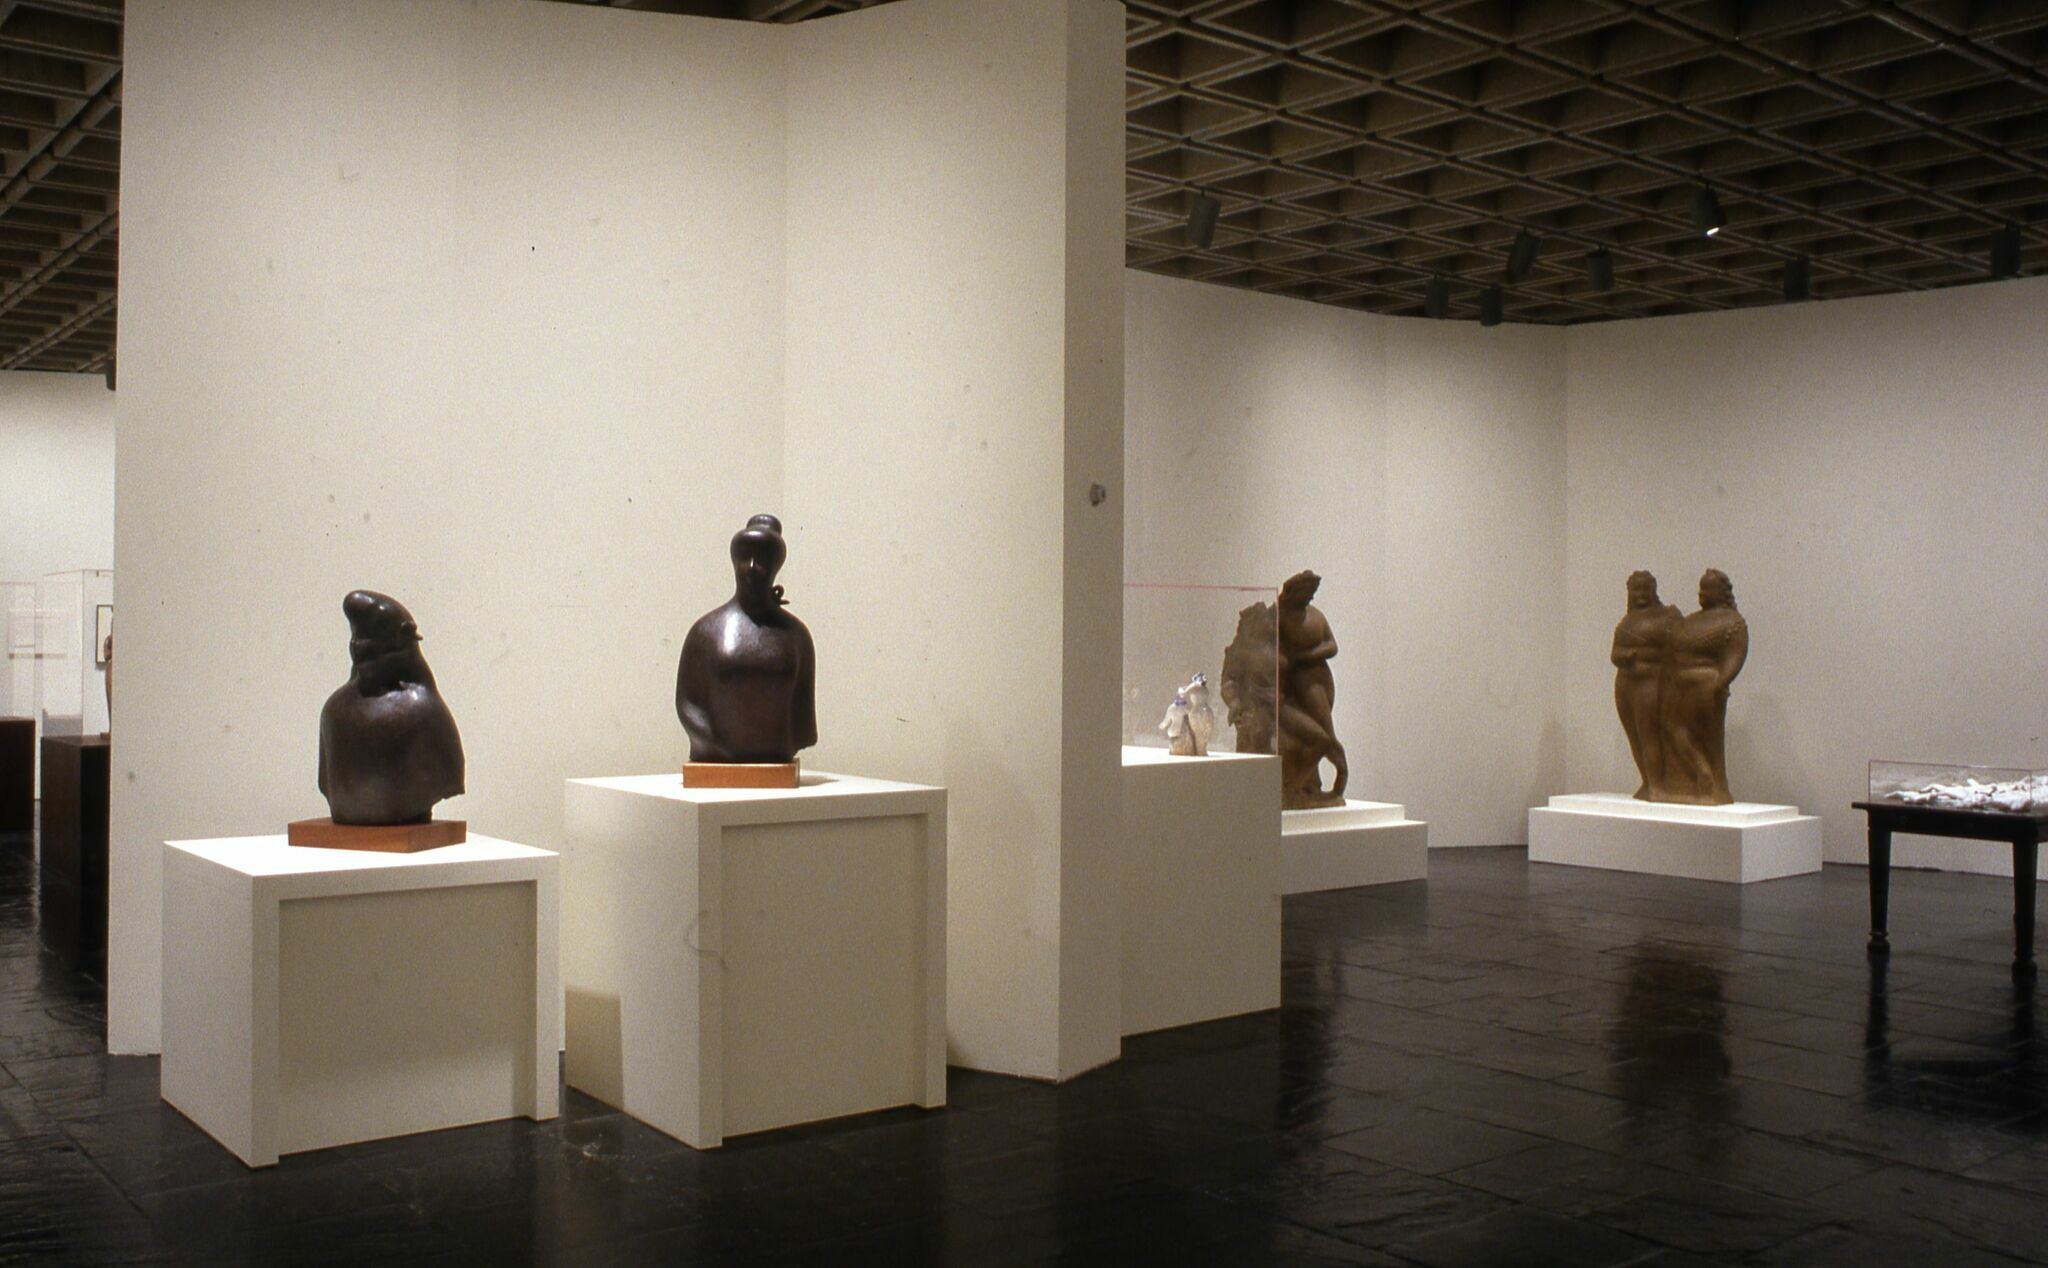 Sculptures displayed in a gallery.